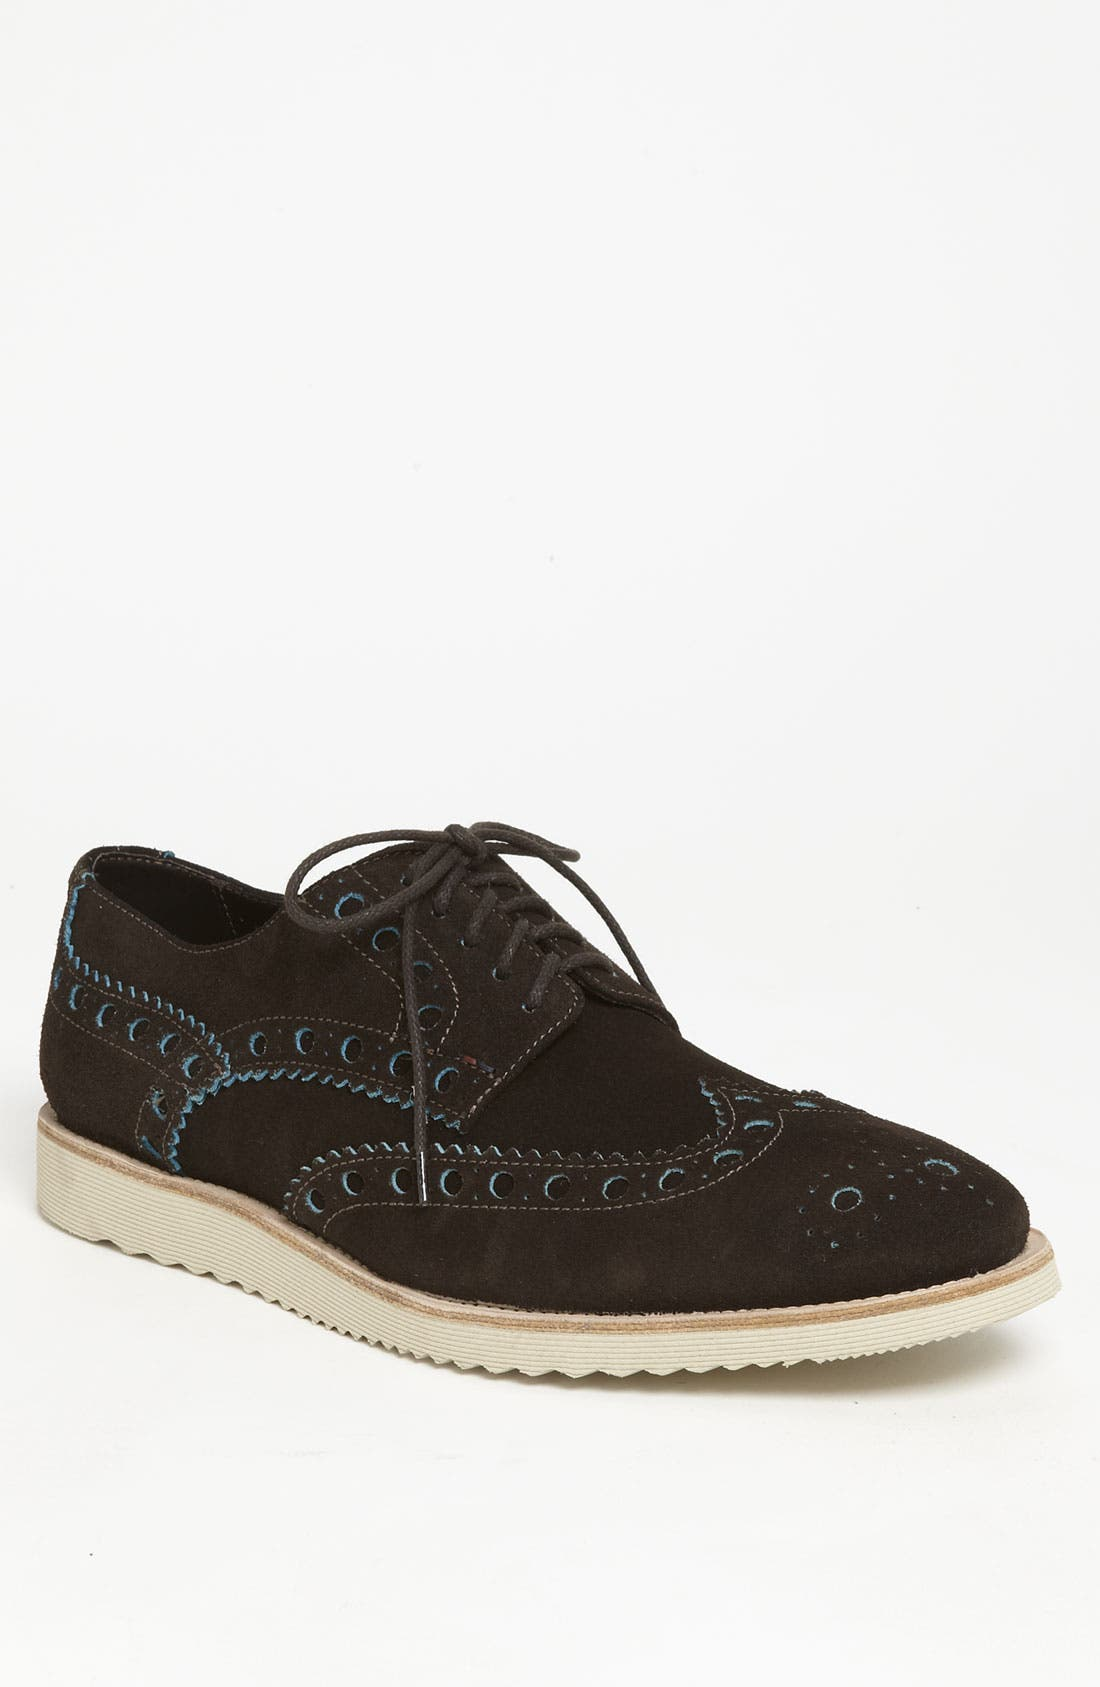 Alternate Image 1 Selected - Paul Smith 'Hump' Wingtip